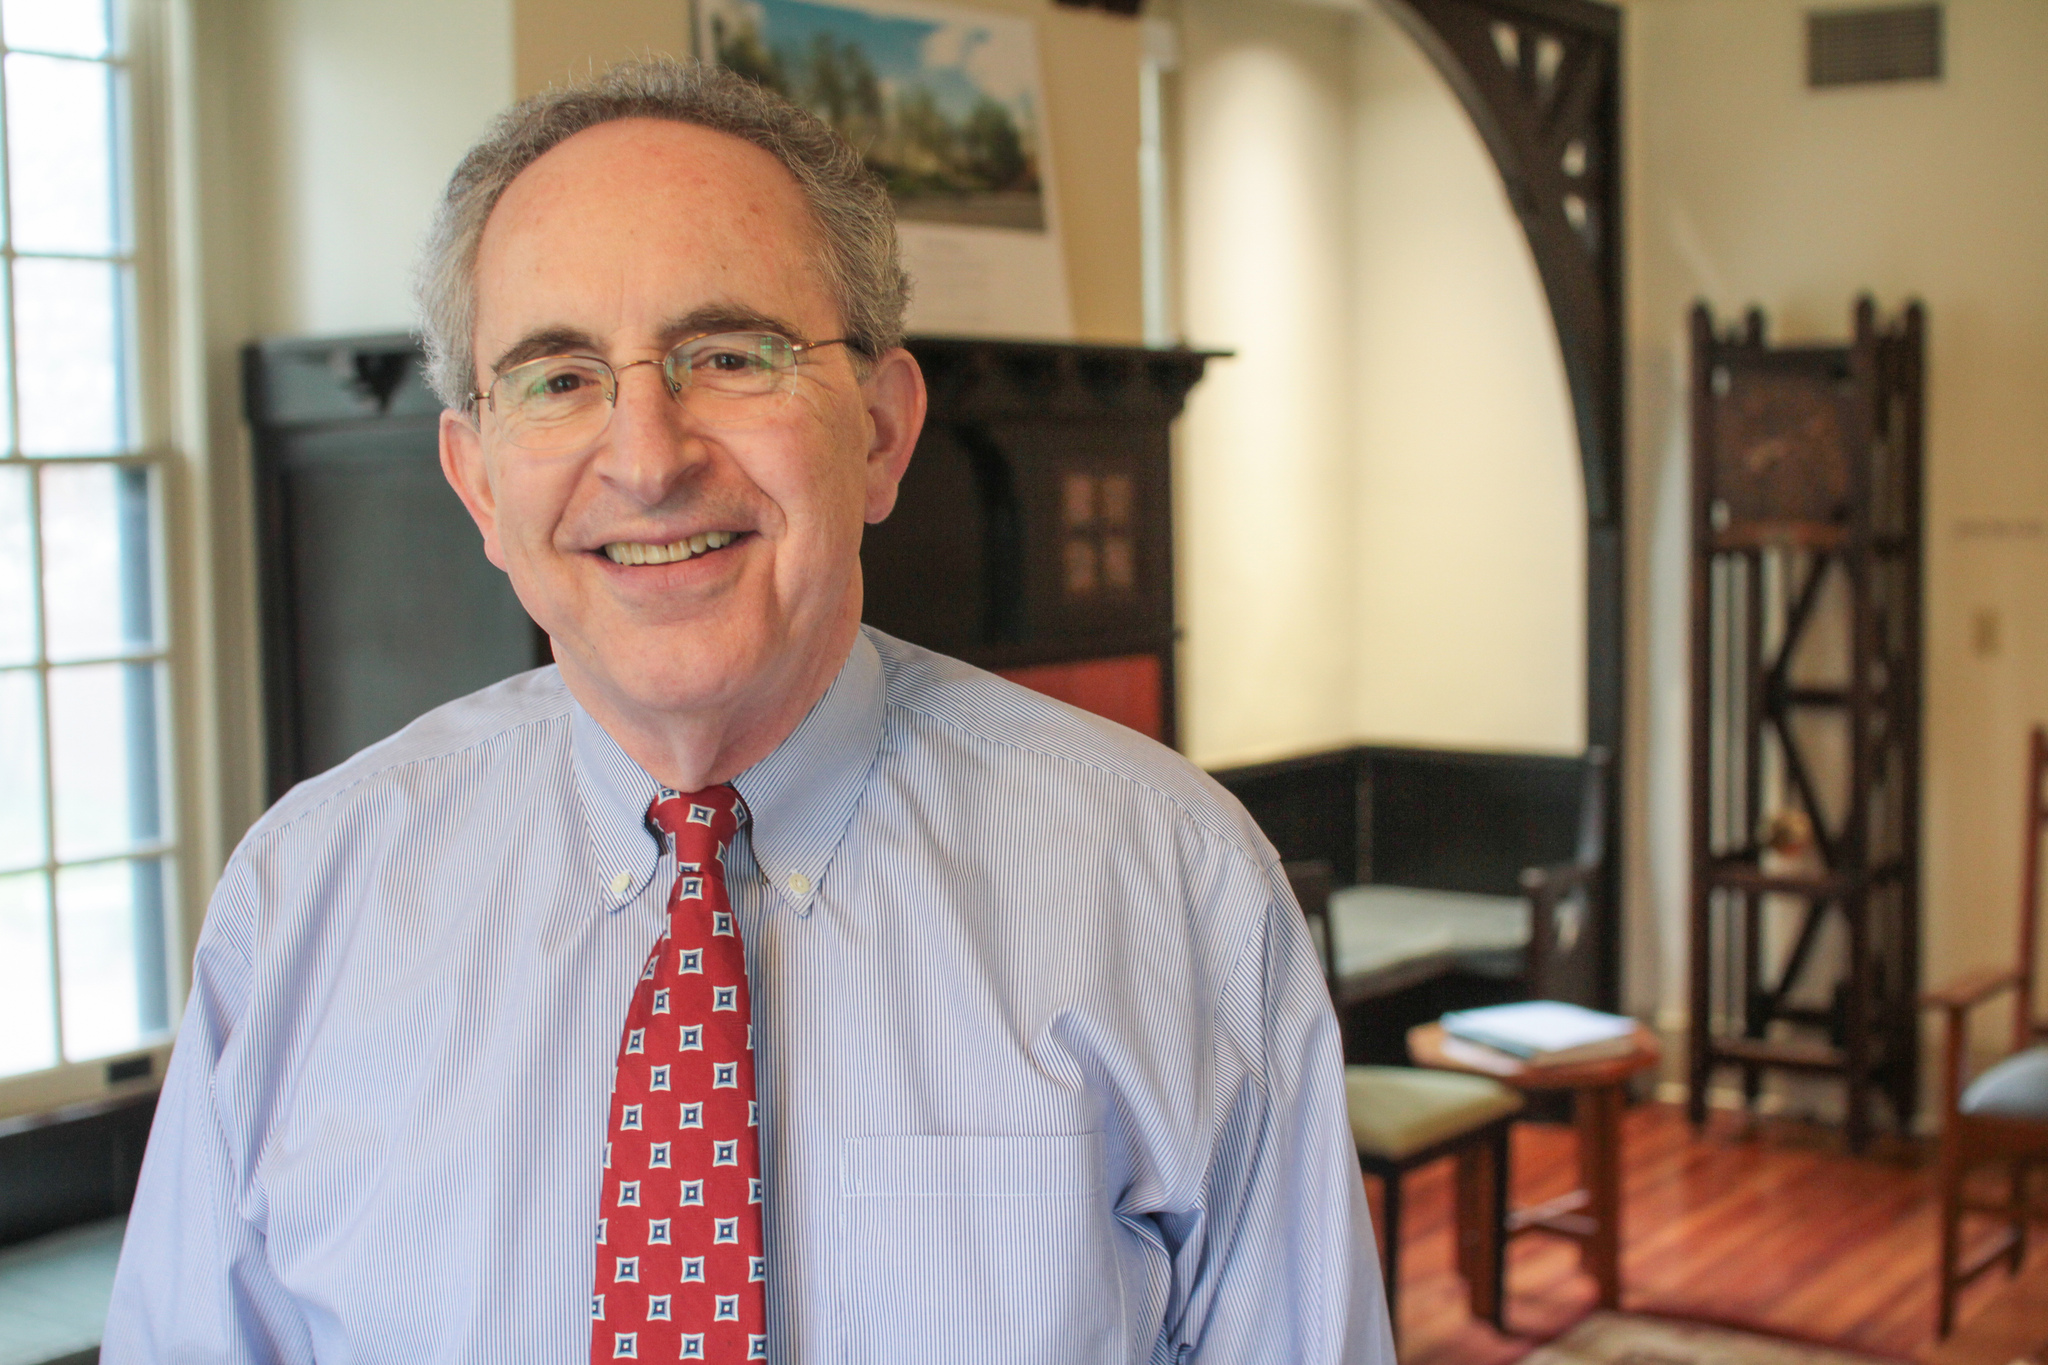 borus to retire after 18 years vassar the miscellany news dean of admission and financial aid david borus estimates that he has over 25 000 applications in his almost 40 years in college admissions